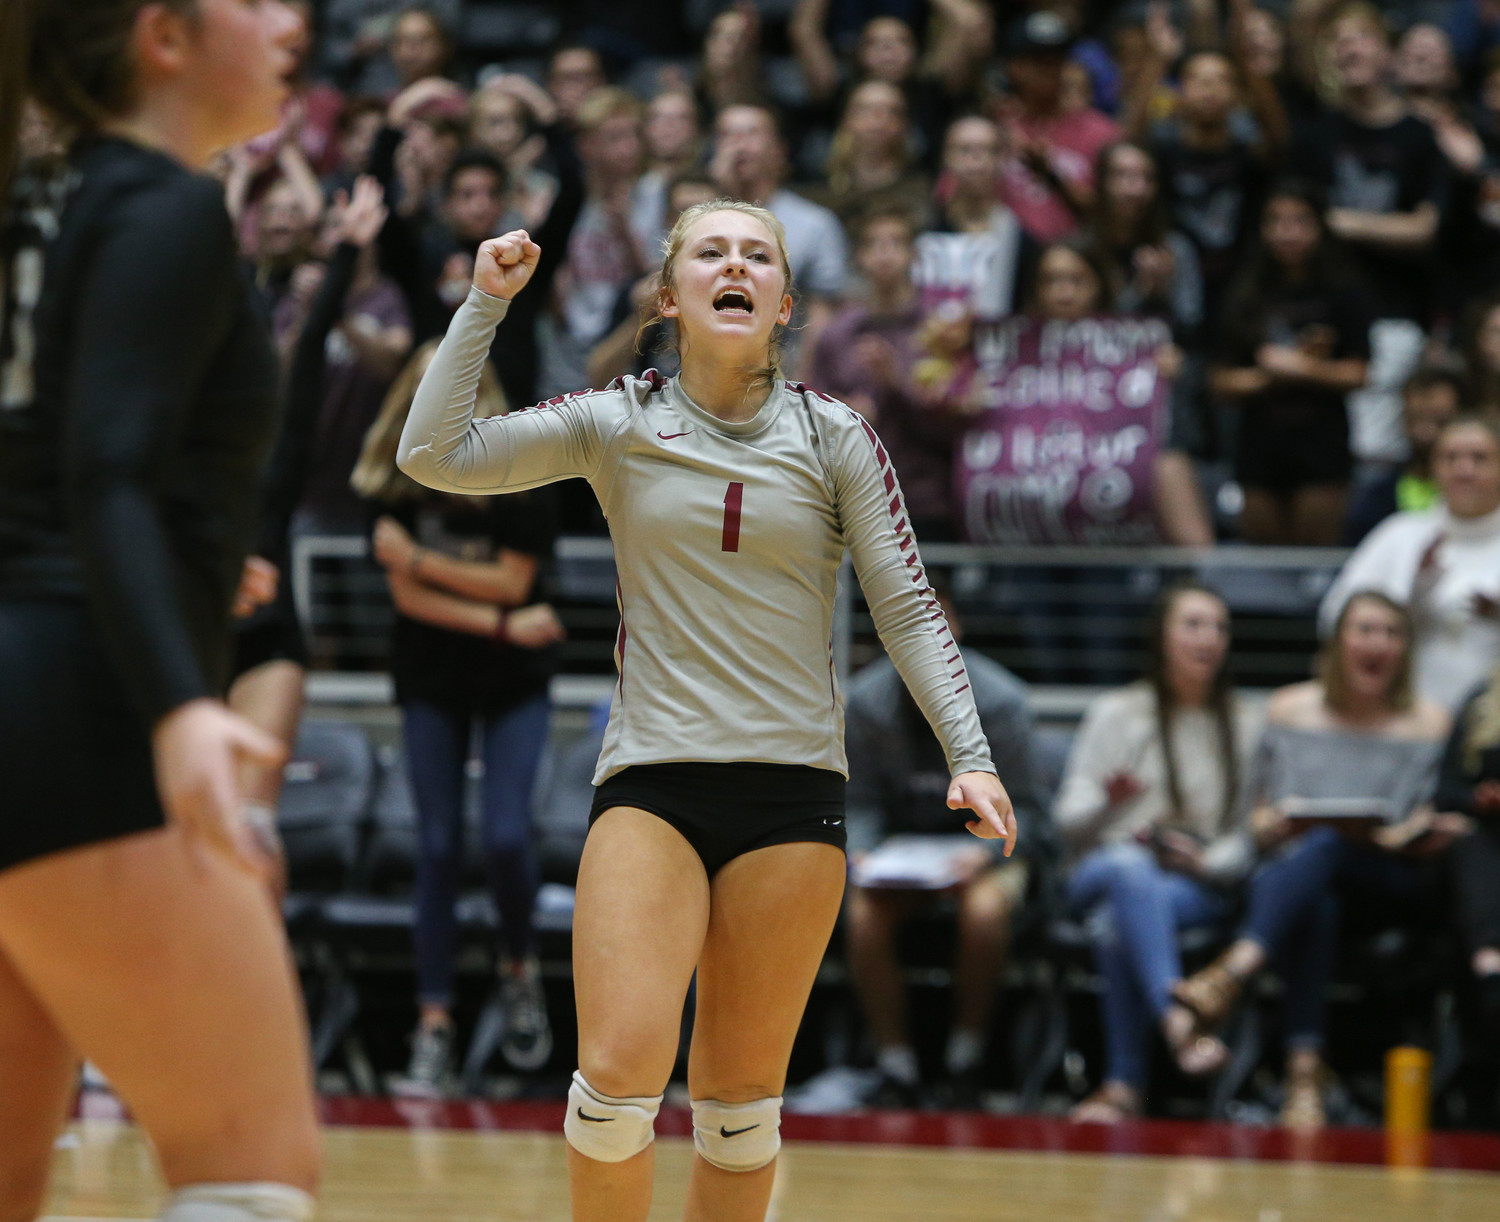 Rouse Raiders senior Katy Northcut (1) celebrates a point during the Class 5A high school volleyball state final between Rouse High School and Prosper High School at Curtis Culwell Center in Garland, Texas, on November 18, 2017. Prosper won the match in five sets, (25-18, 21-25, 18-25, 25, 23, 16-14) to win the 5A state championship.